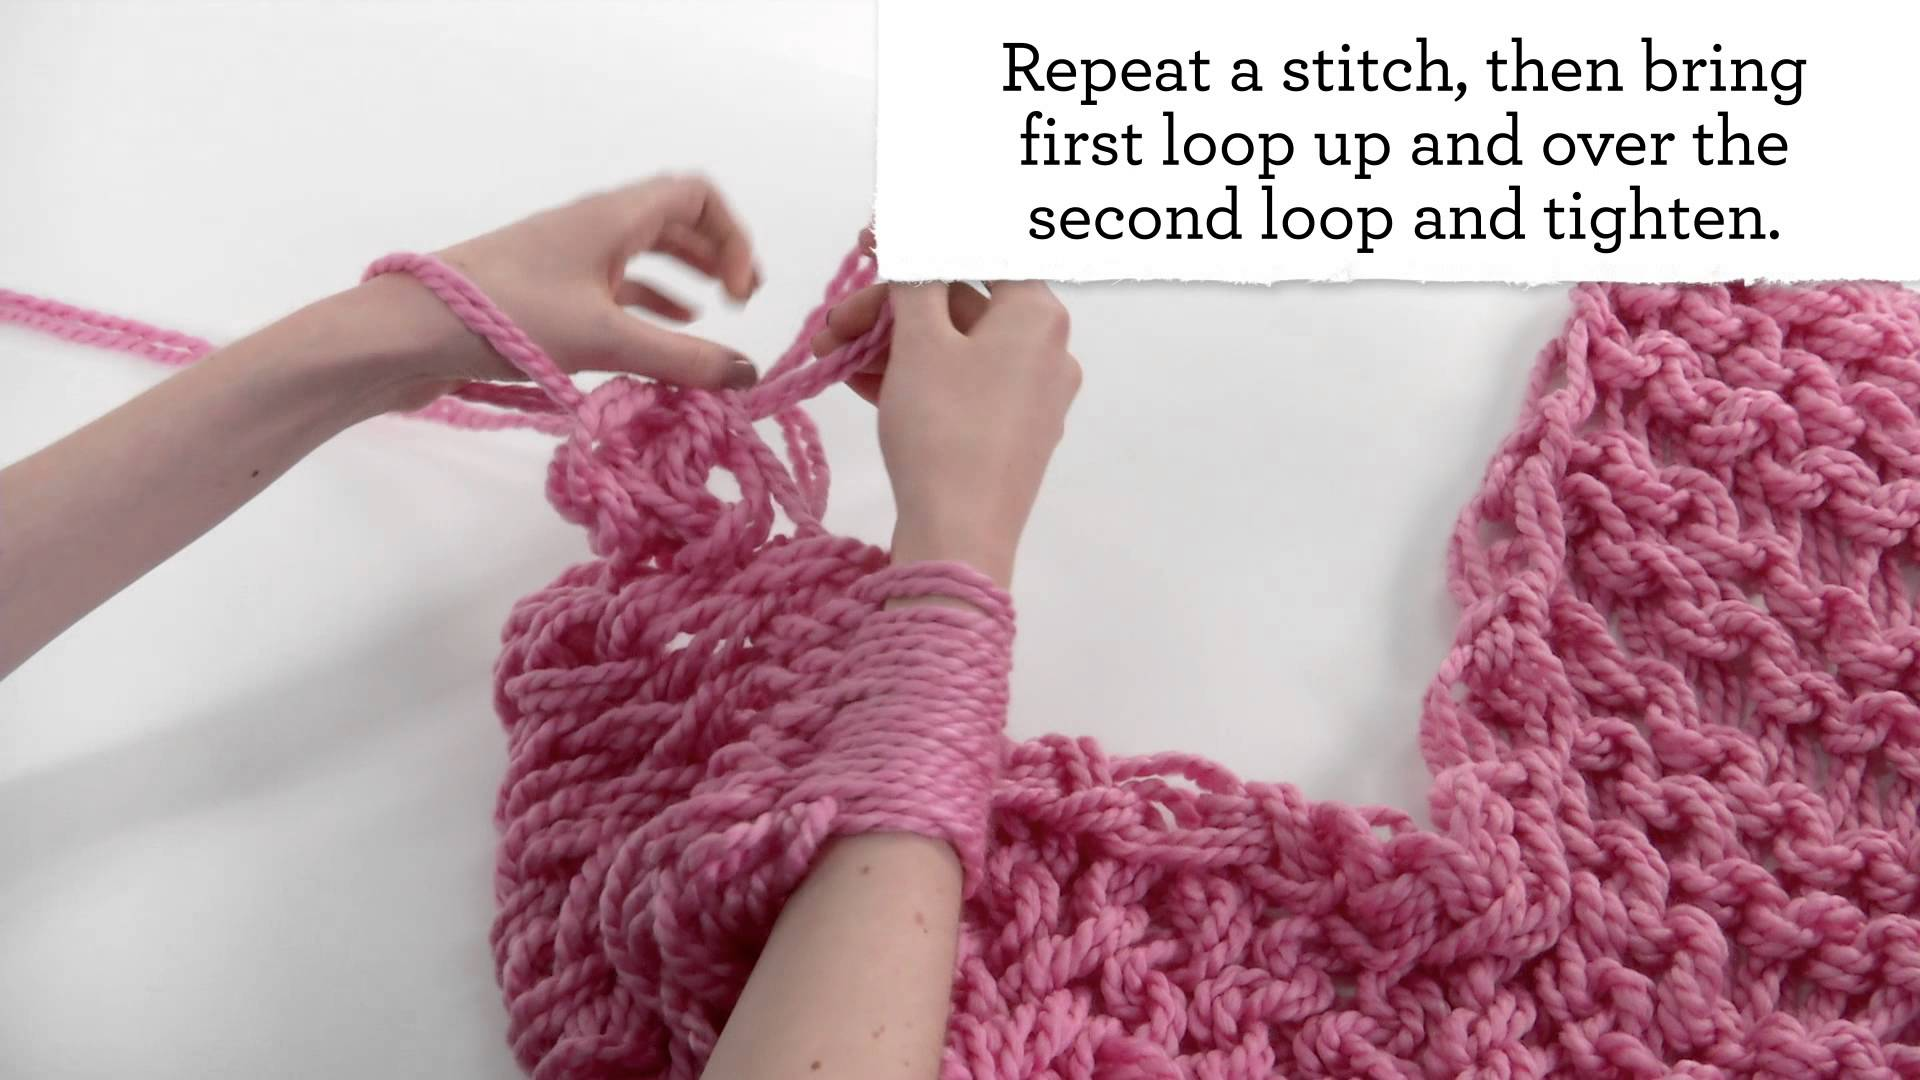 Crocheting Using Your Arms : of the color of your choice and your arms and you are ready to begin